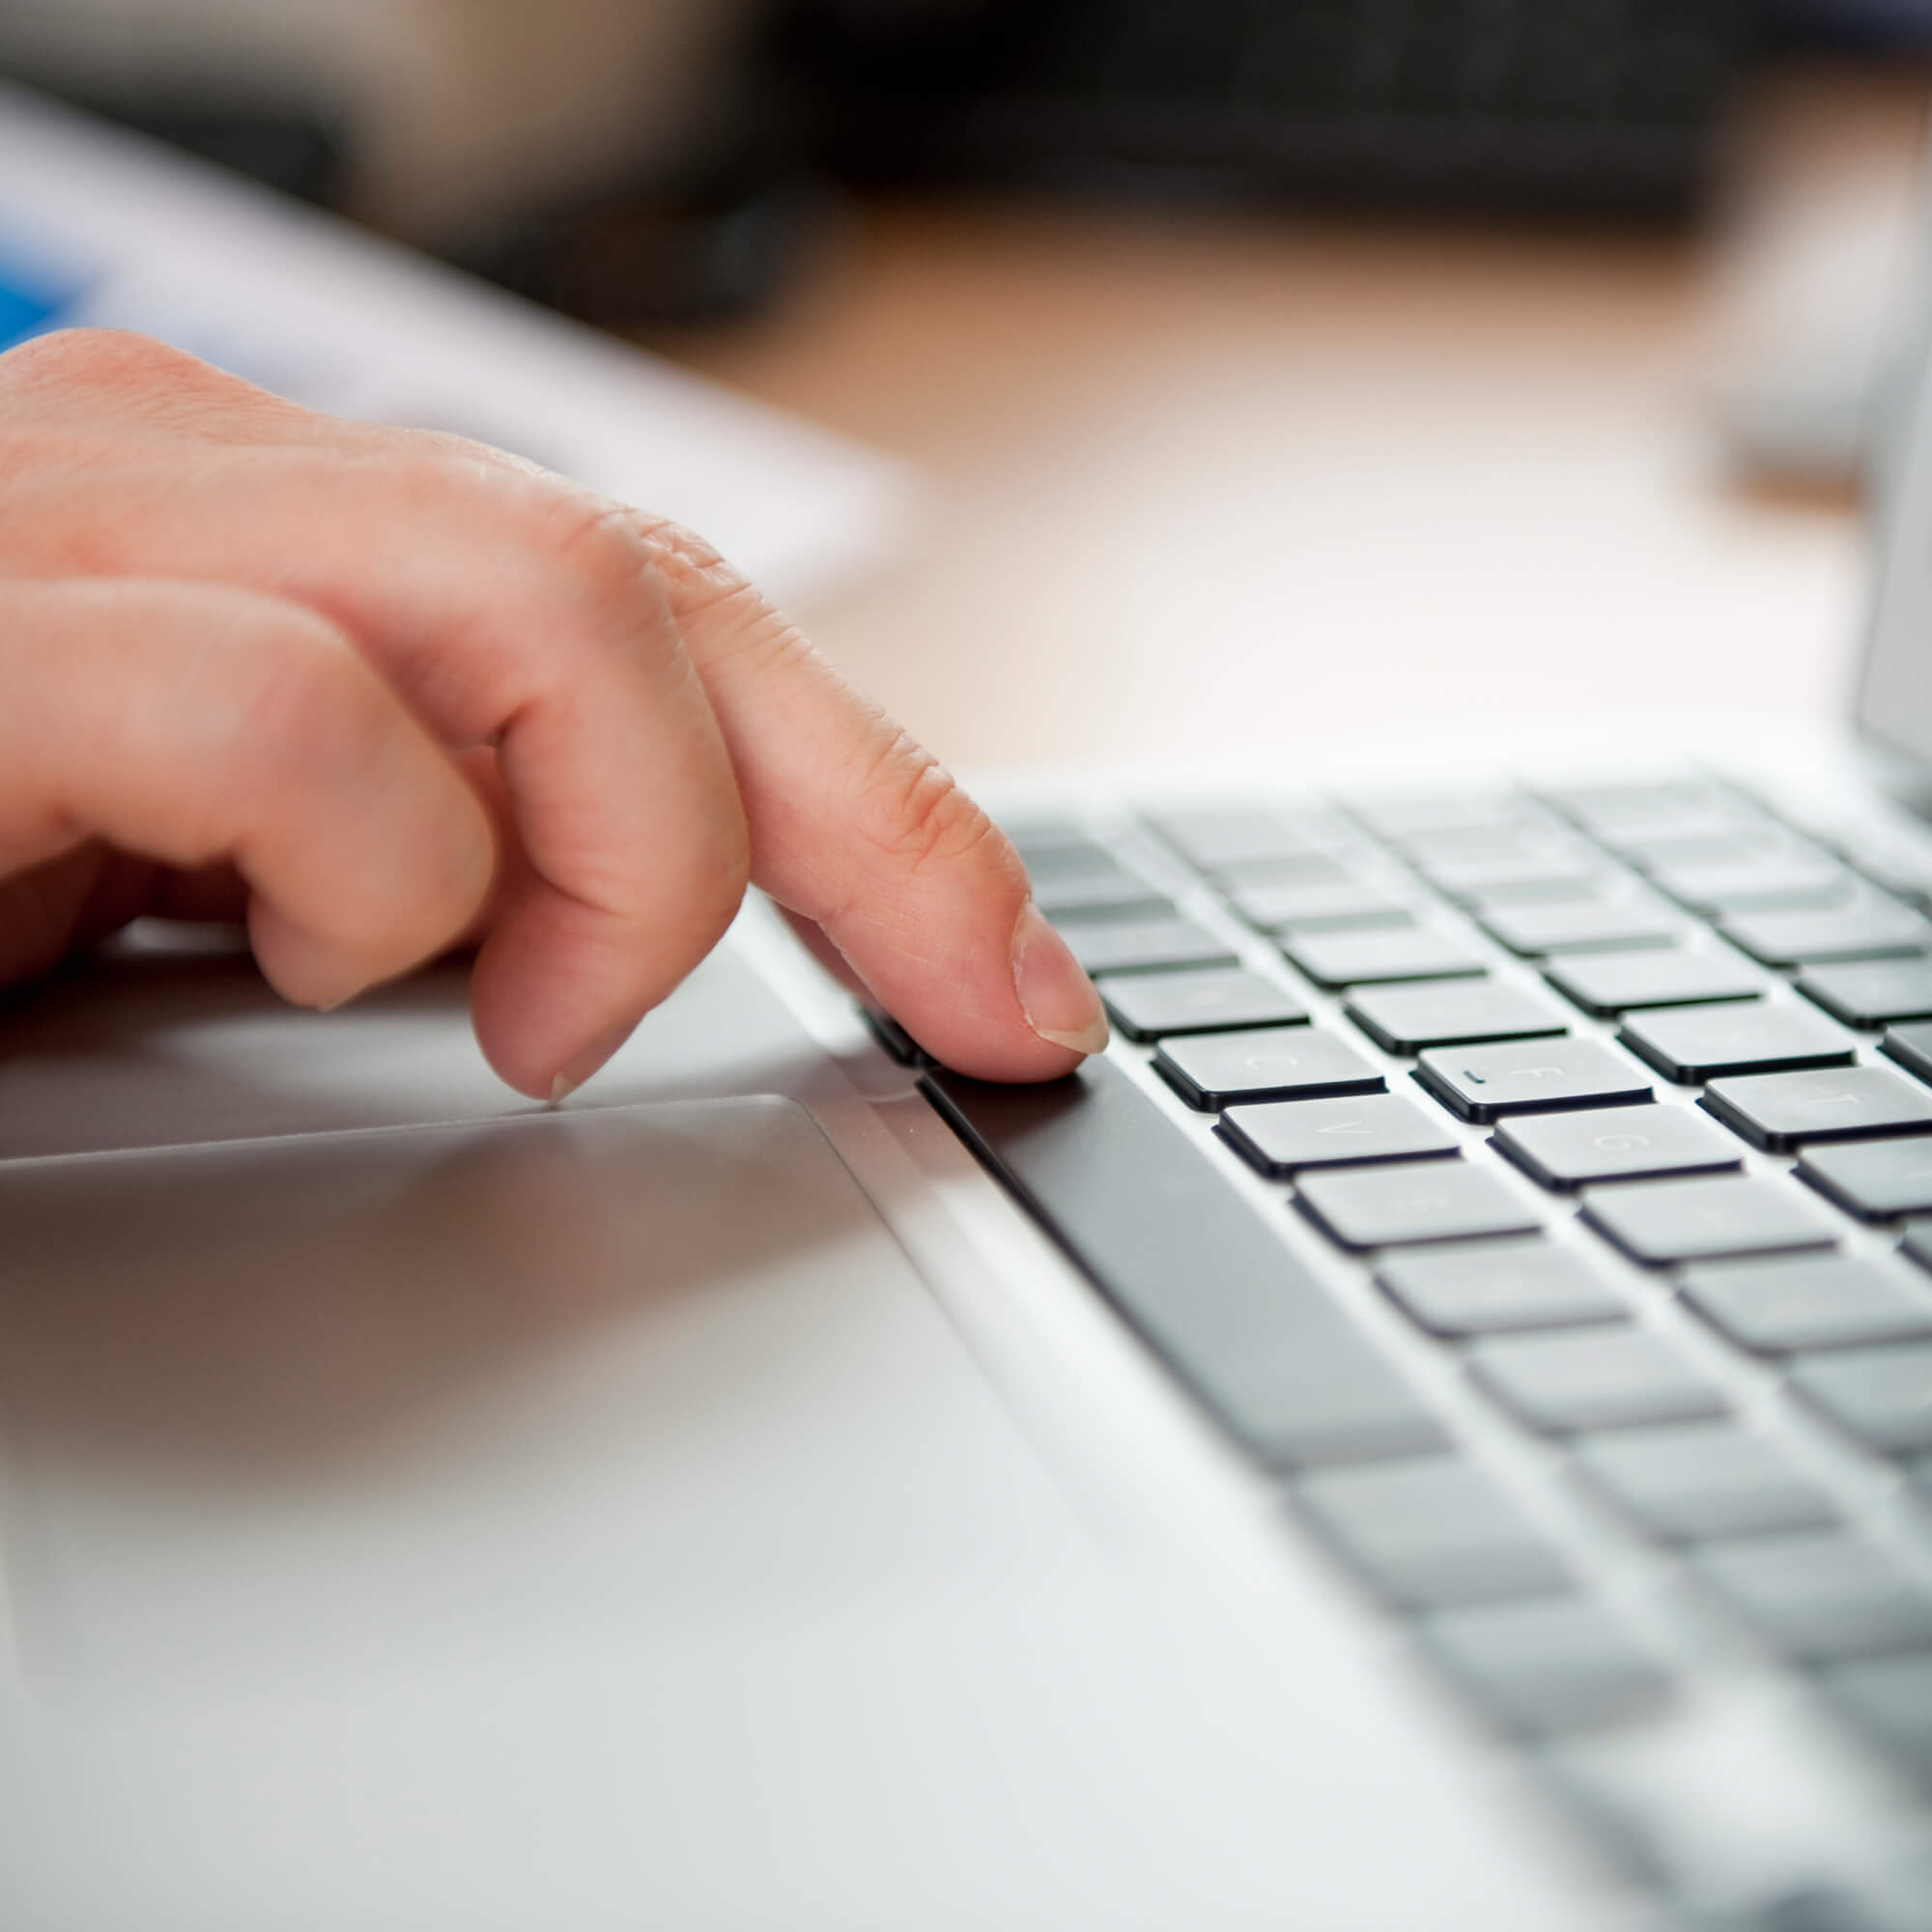 A close up of a hand on a laptop keyboard